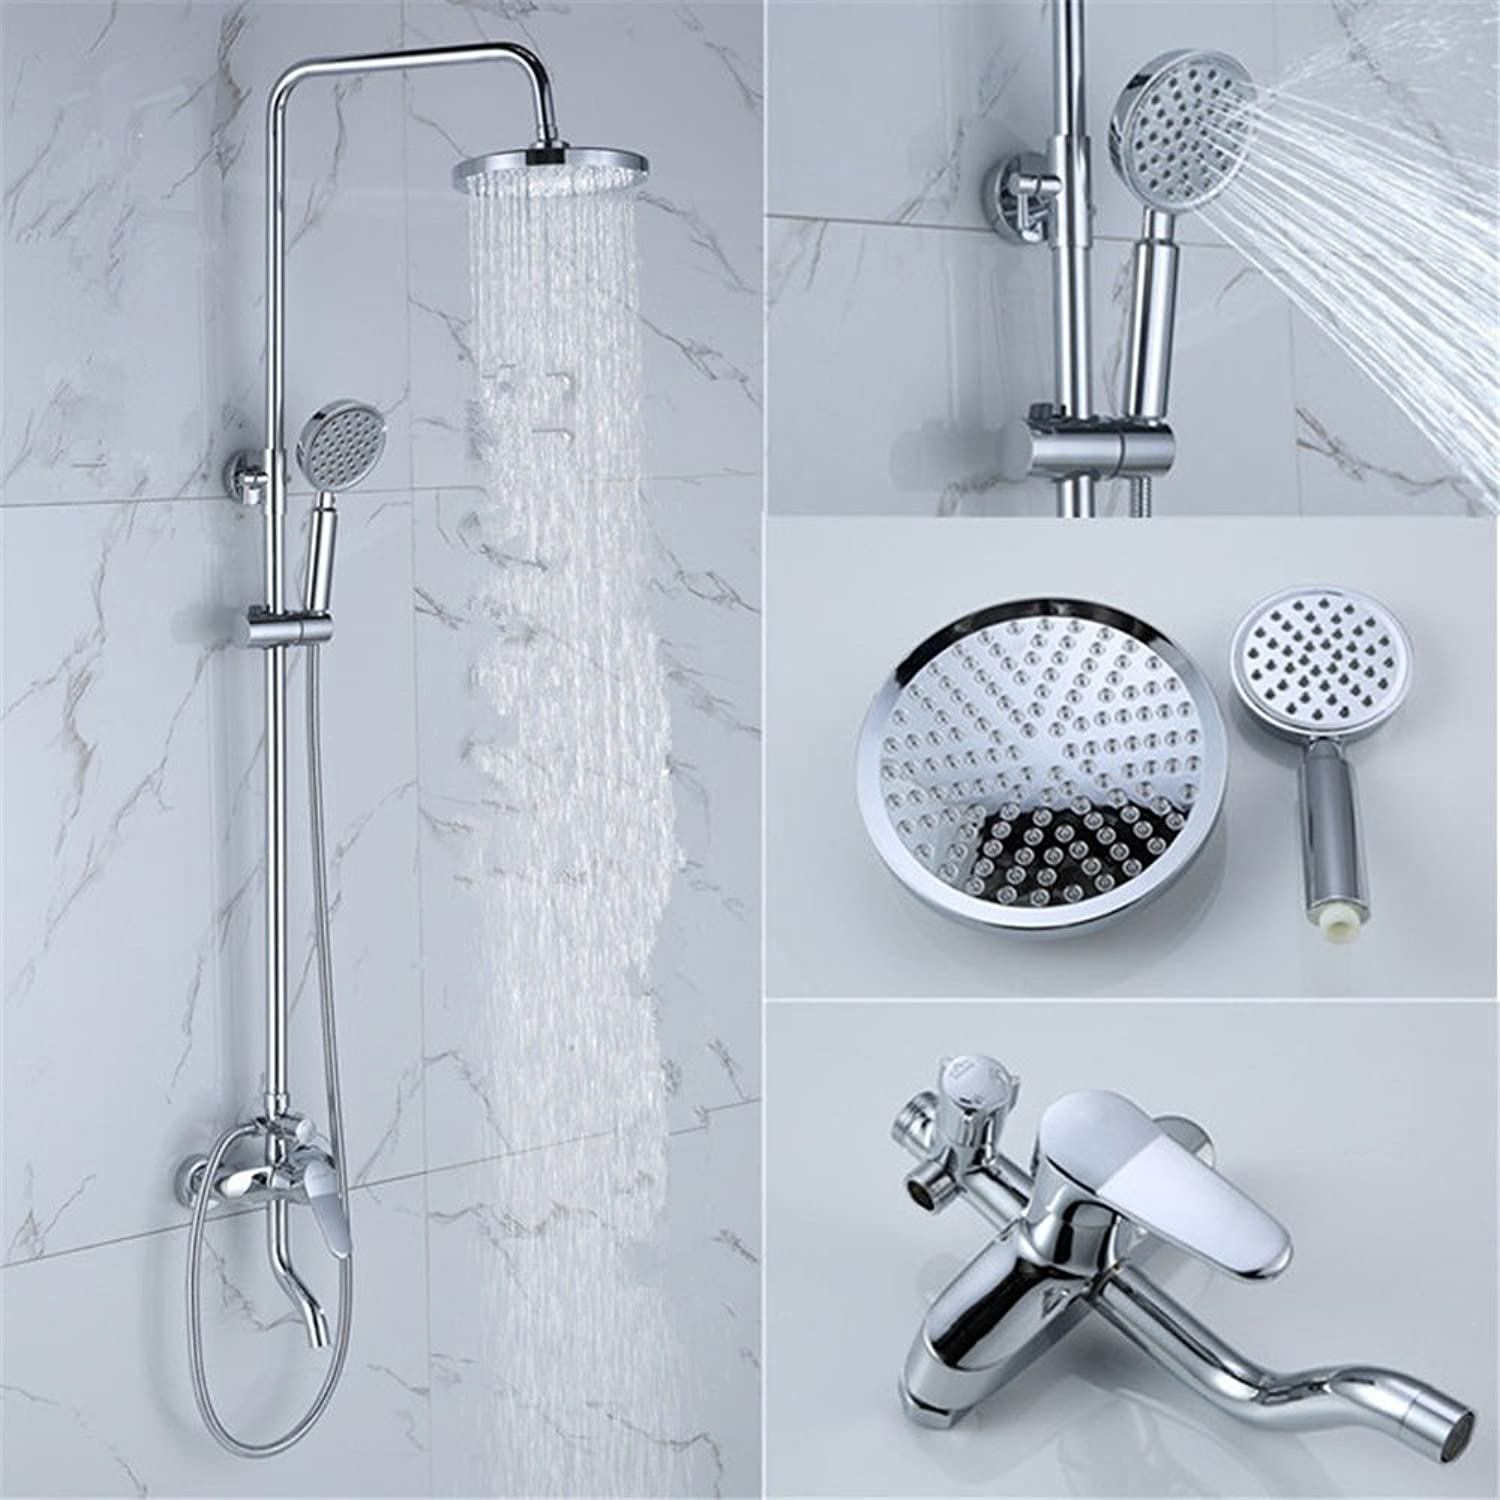 Oudan Bathroom Sink Basin Tap Brass Mixer Tap Washroom Mixer Faucet The copper shower faucet and cold water showers ultra-low pressure showers bathroom shower k